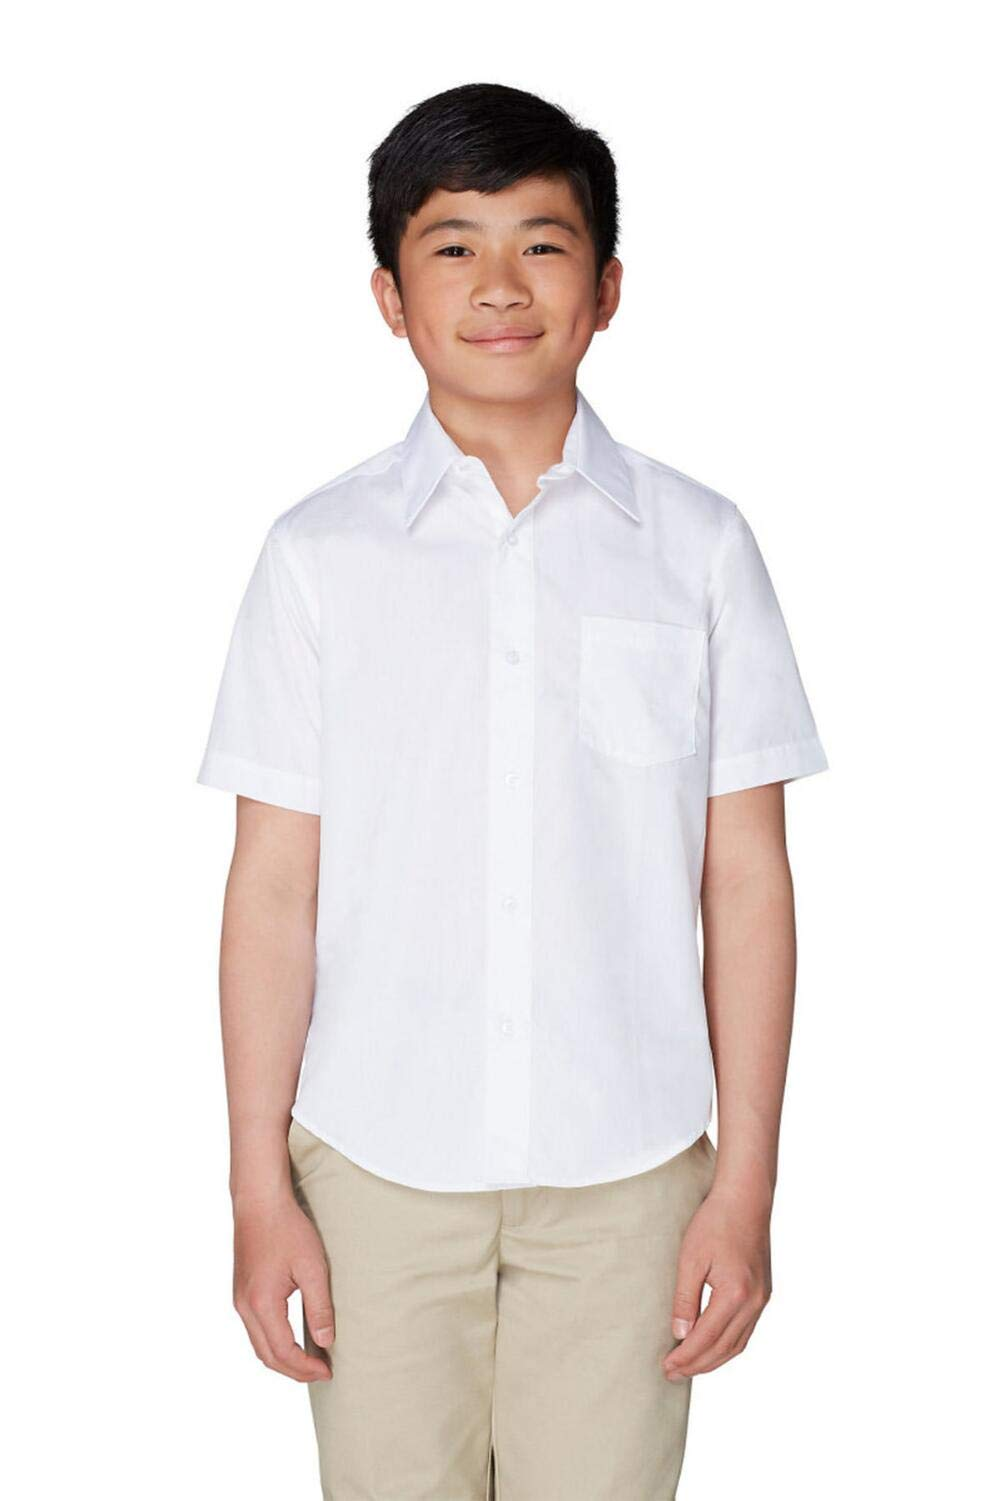 French Toast Short Sleeve Dress Shirt with Expandable Collar White XL